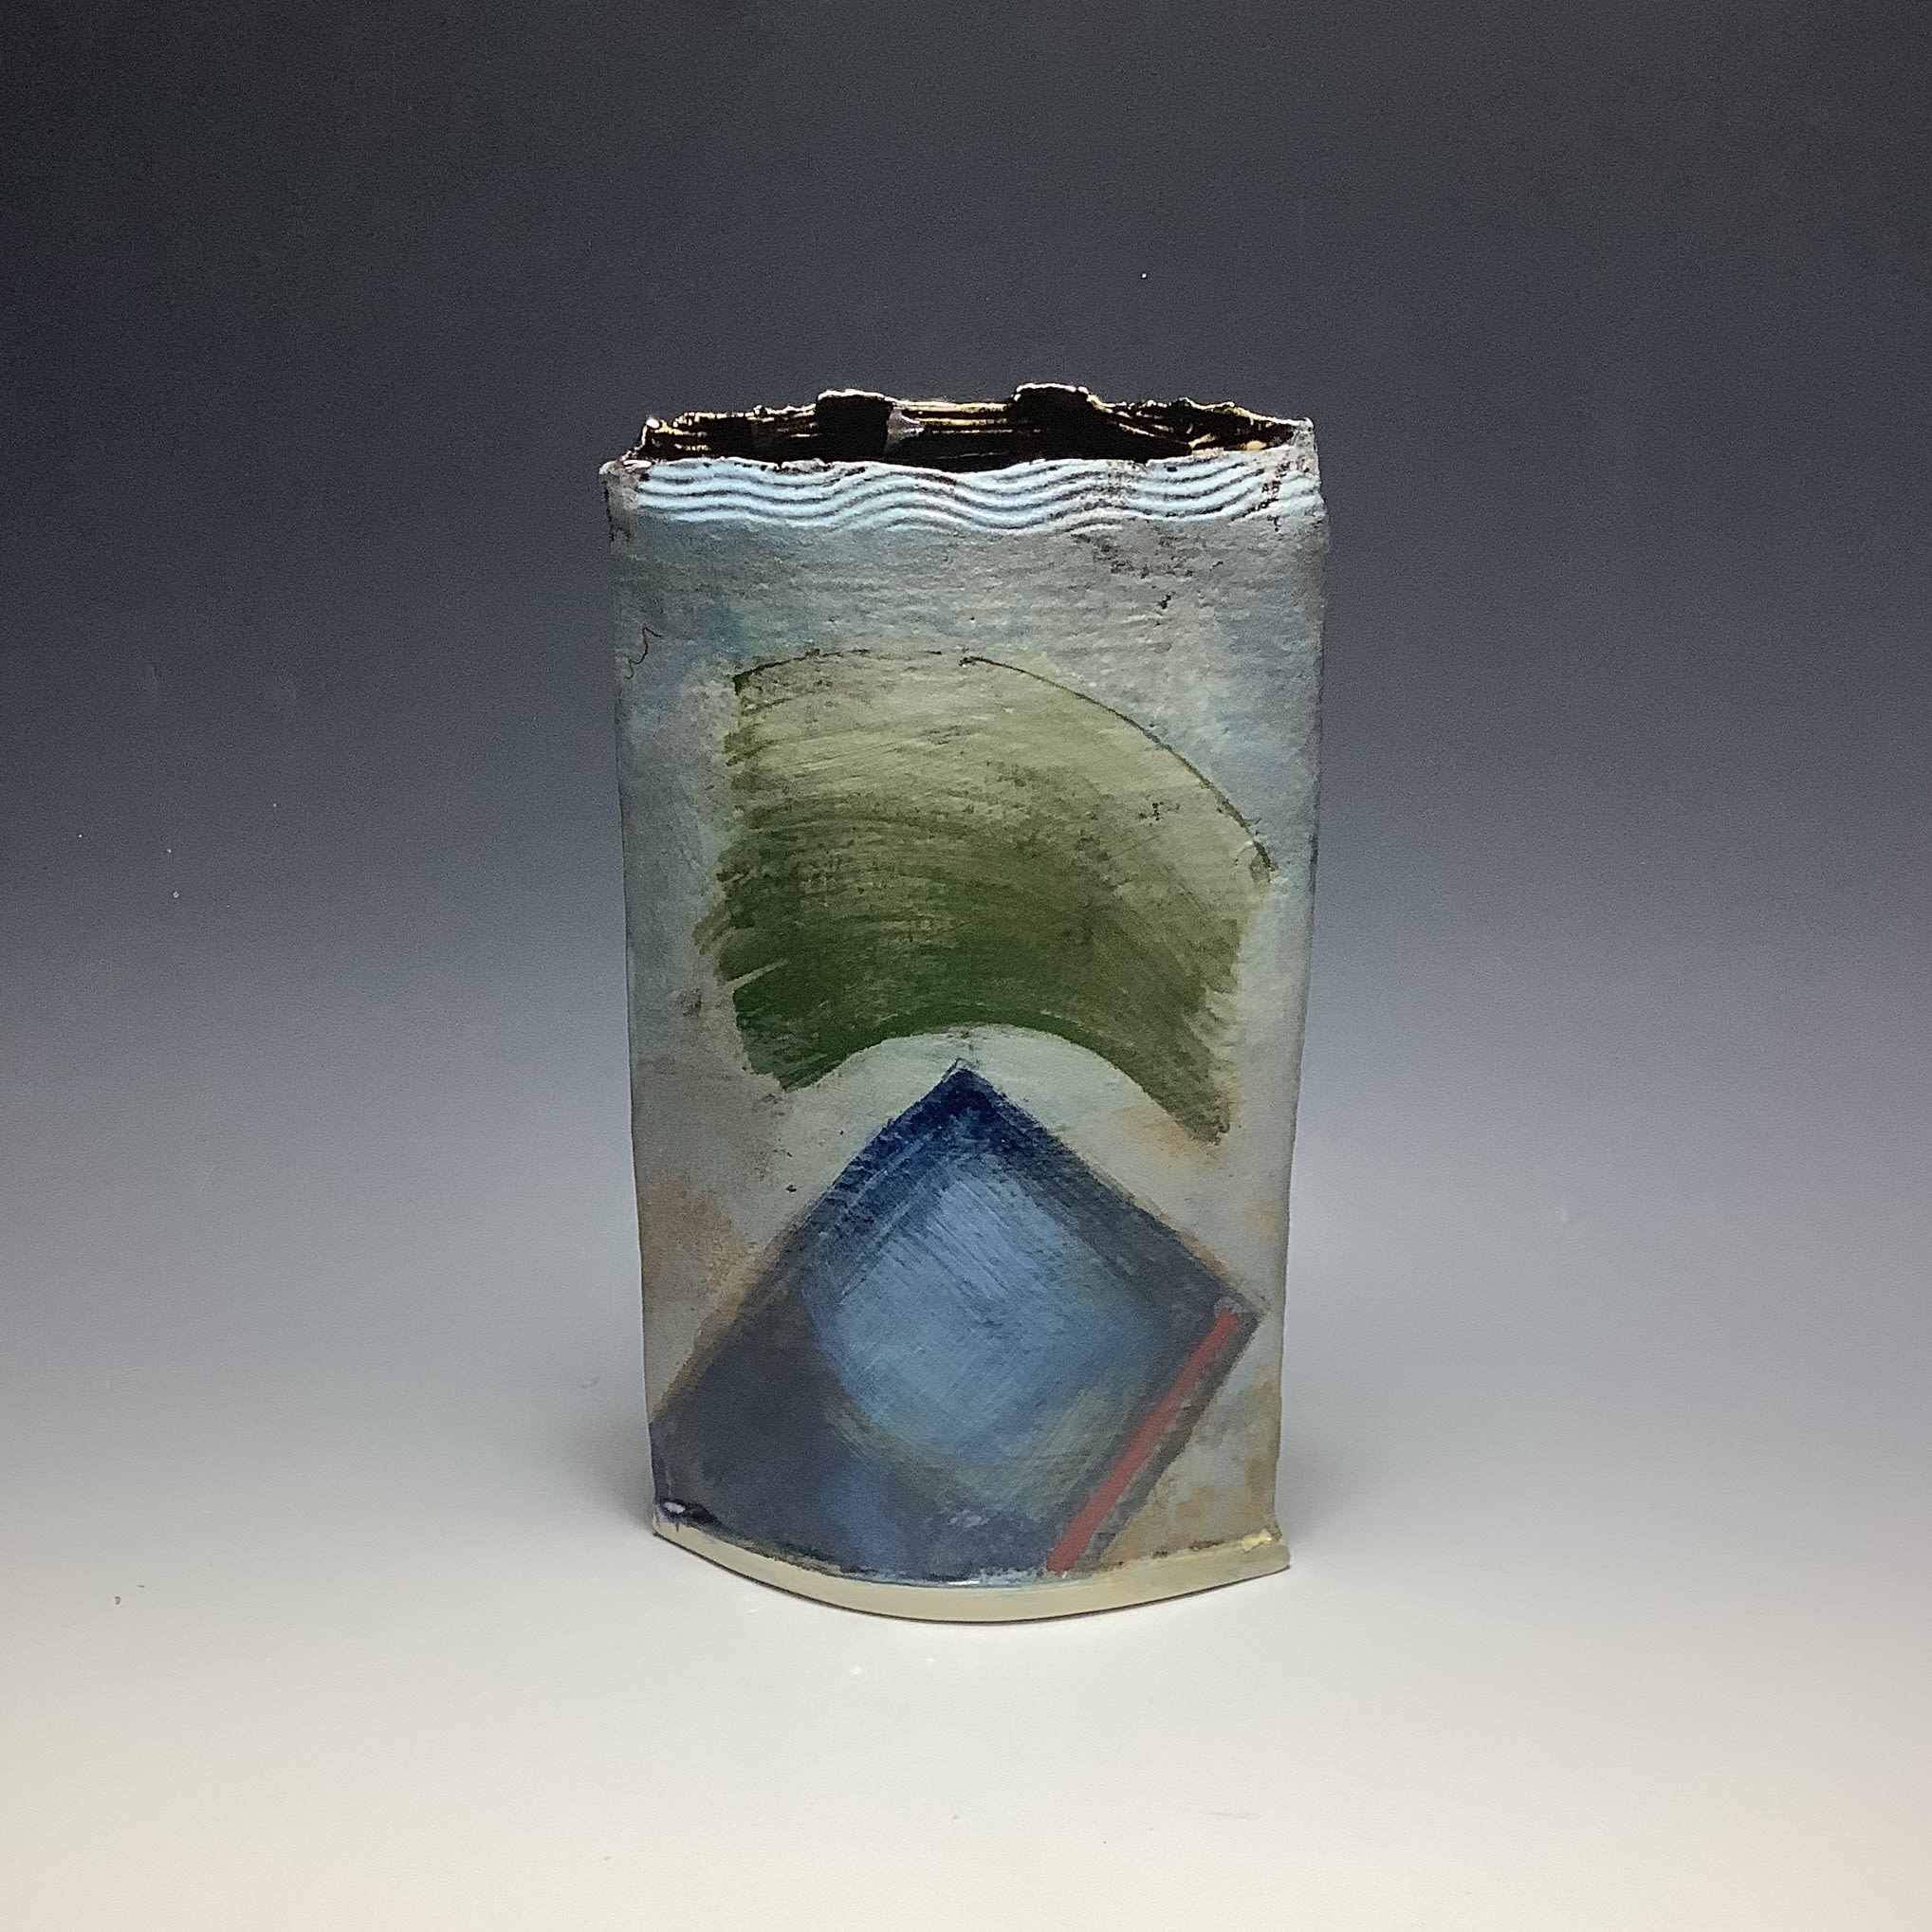 """<span class=""""link fancybox-details-link""""><a href=""""/artists/100-john-pollex/works/6827-john-pollex-large-slab-2020/"""">View Detail Page</a></span><div class=""""artist""""><strong>John Pollex</strong></div> b. 1941 <div class=""""title""""><em>Large Slab</em>, 2020</div> <div class=""""signed_and_dated"""">impressed with the artist's seal mark 'JP'</div> <div class=""""medium"""">white earthenware decorated with coloured slips</div> <div class=""""dimensions"""">10 x 7 in</div><div class=""""copyright_line"""">Ownart: £33 x 10 Months, 0% APR</div>"""